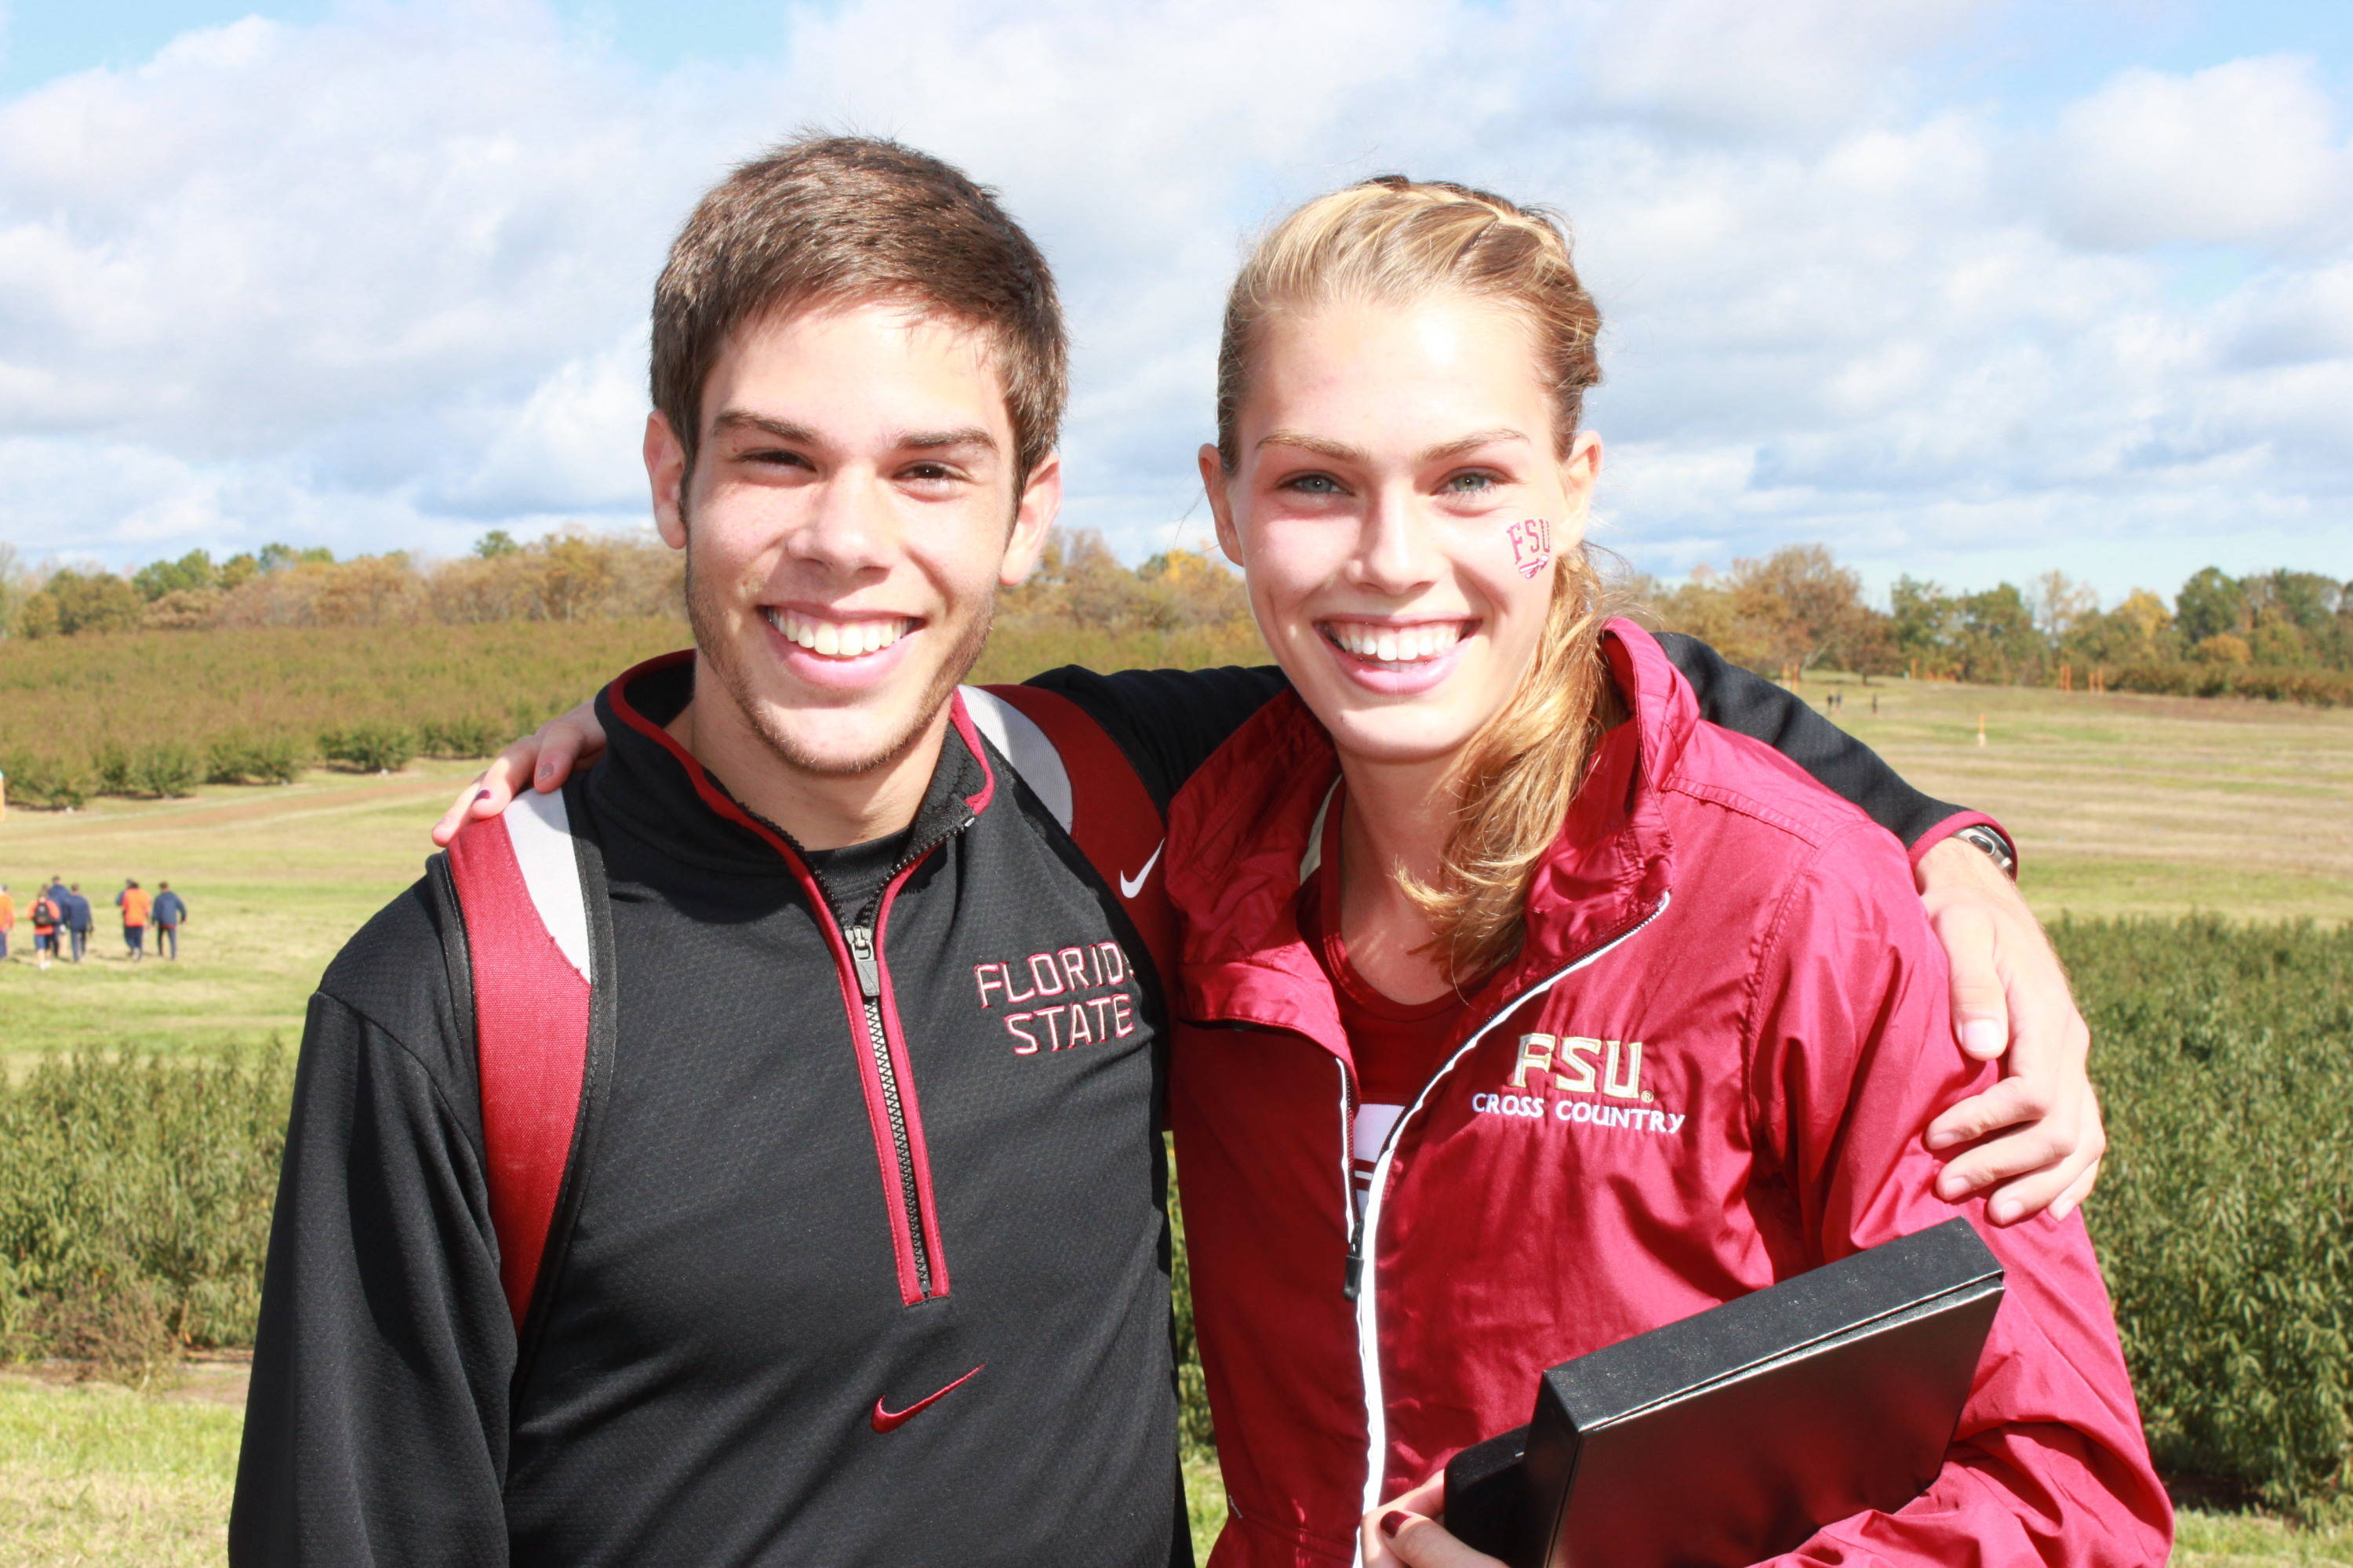 AJ del Valle and Colleen Quigley gave FSU a sweep of ACC Freshman of the Year honors at the 2011 championships